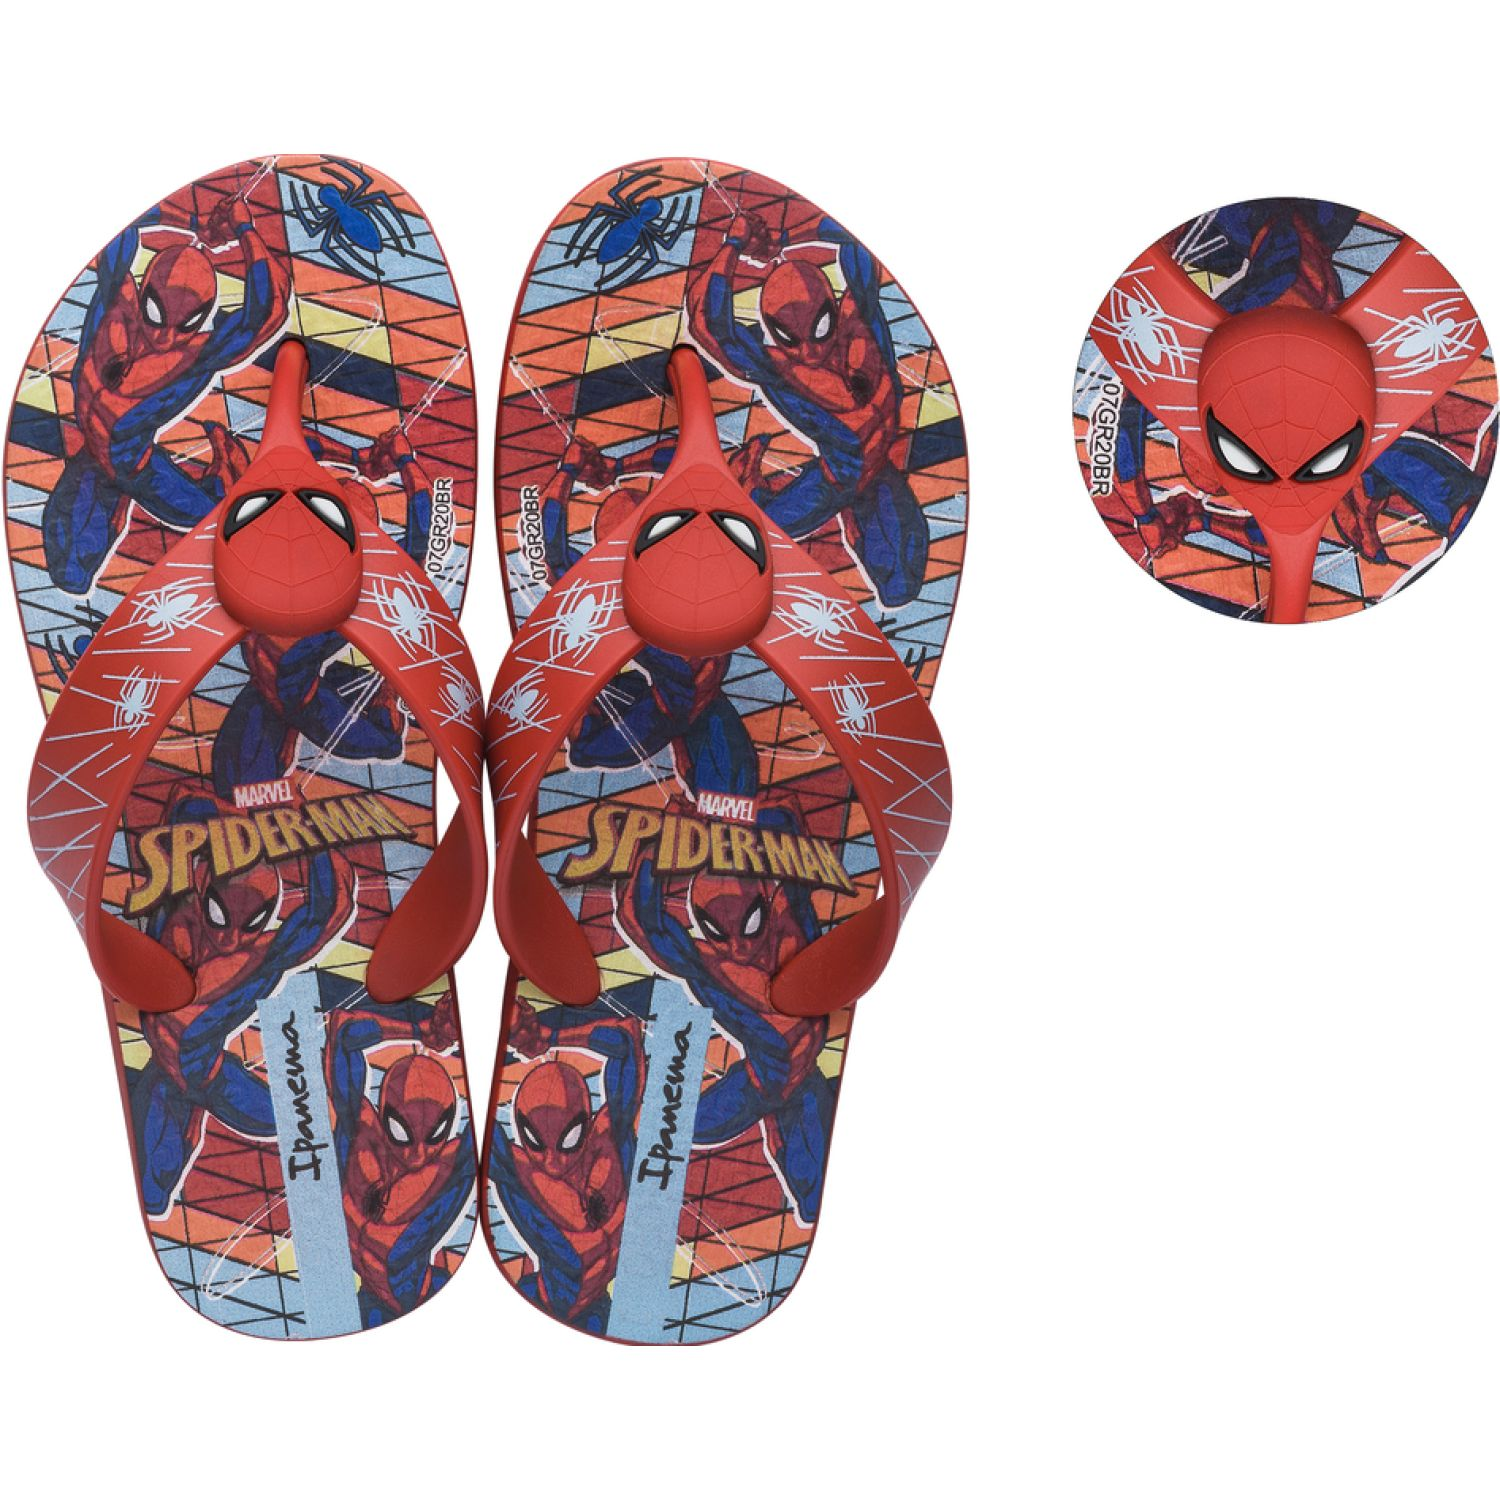 Spiderman Sandalia Spiderman Mod2 Vr21 Rojo Sandalias